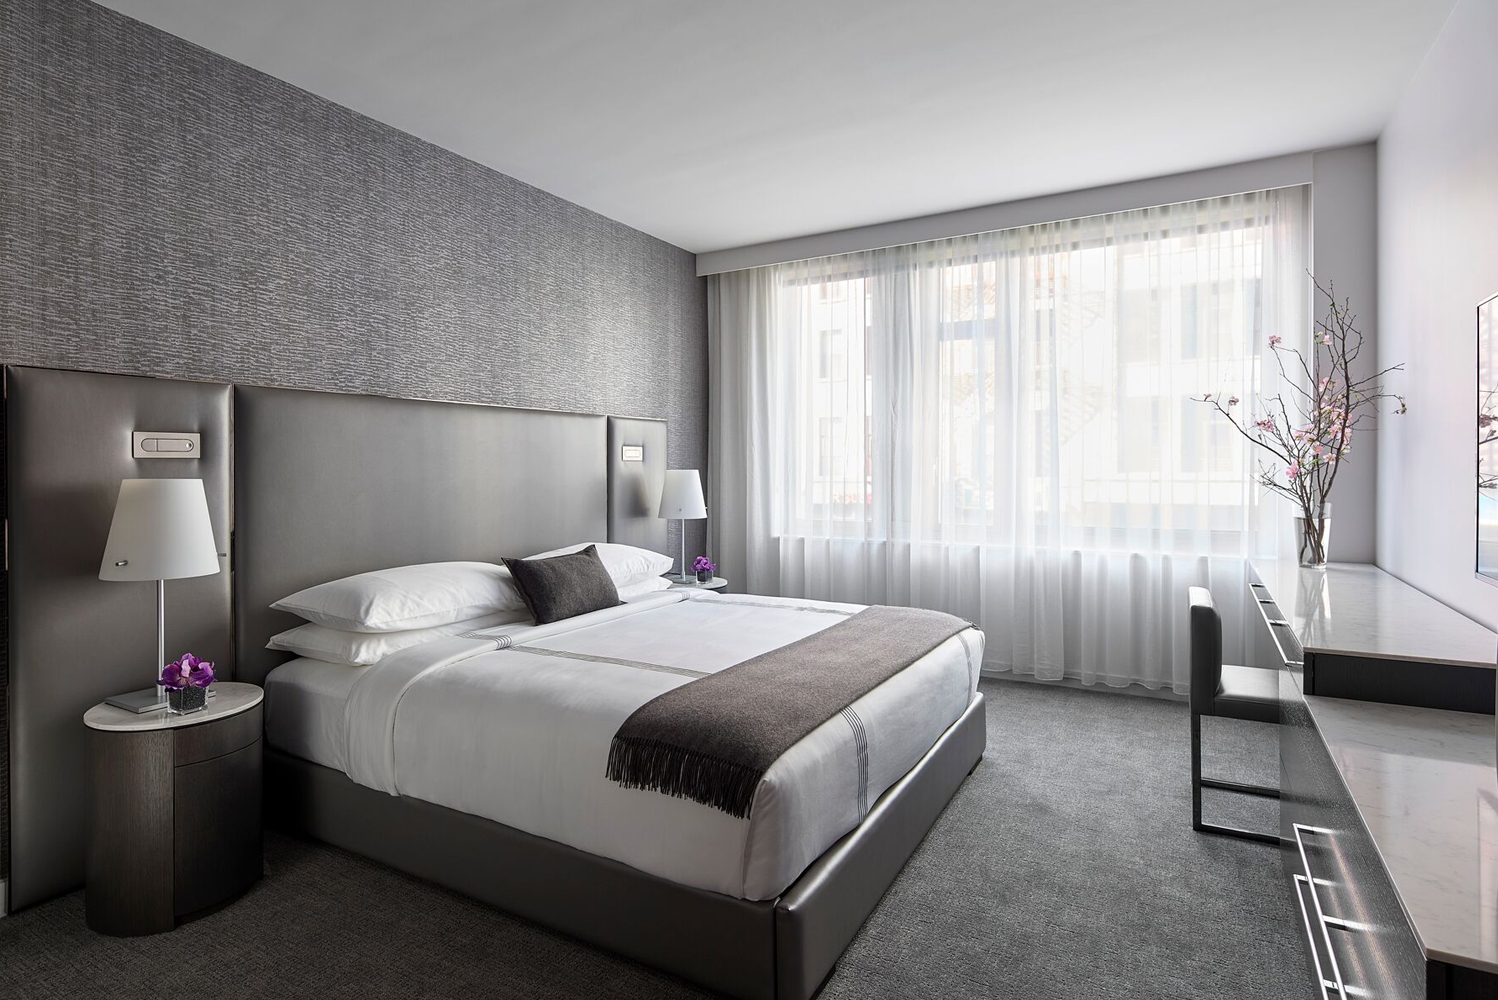 AKA Tribeca has 100 guestrooms with king beds and residential-style, walk-in showers and large closets.